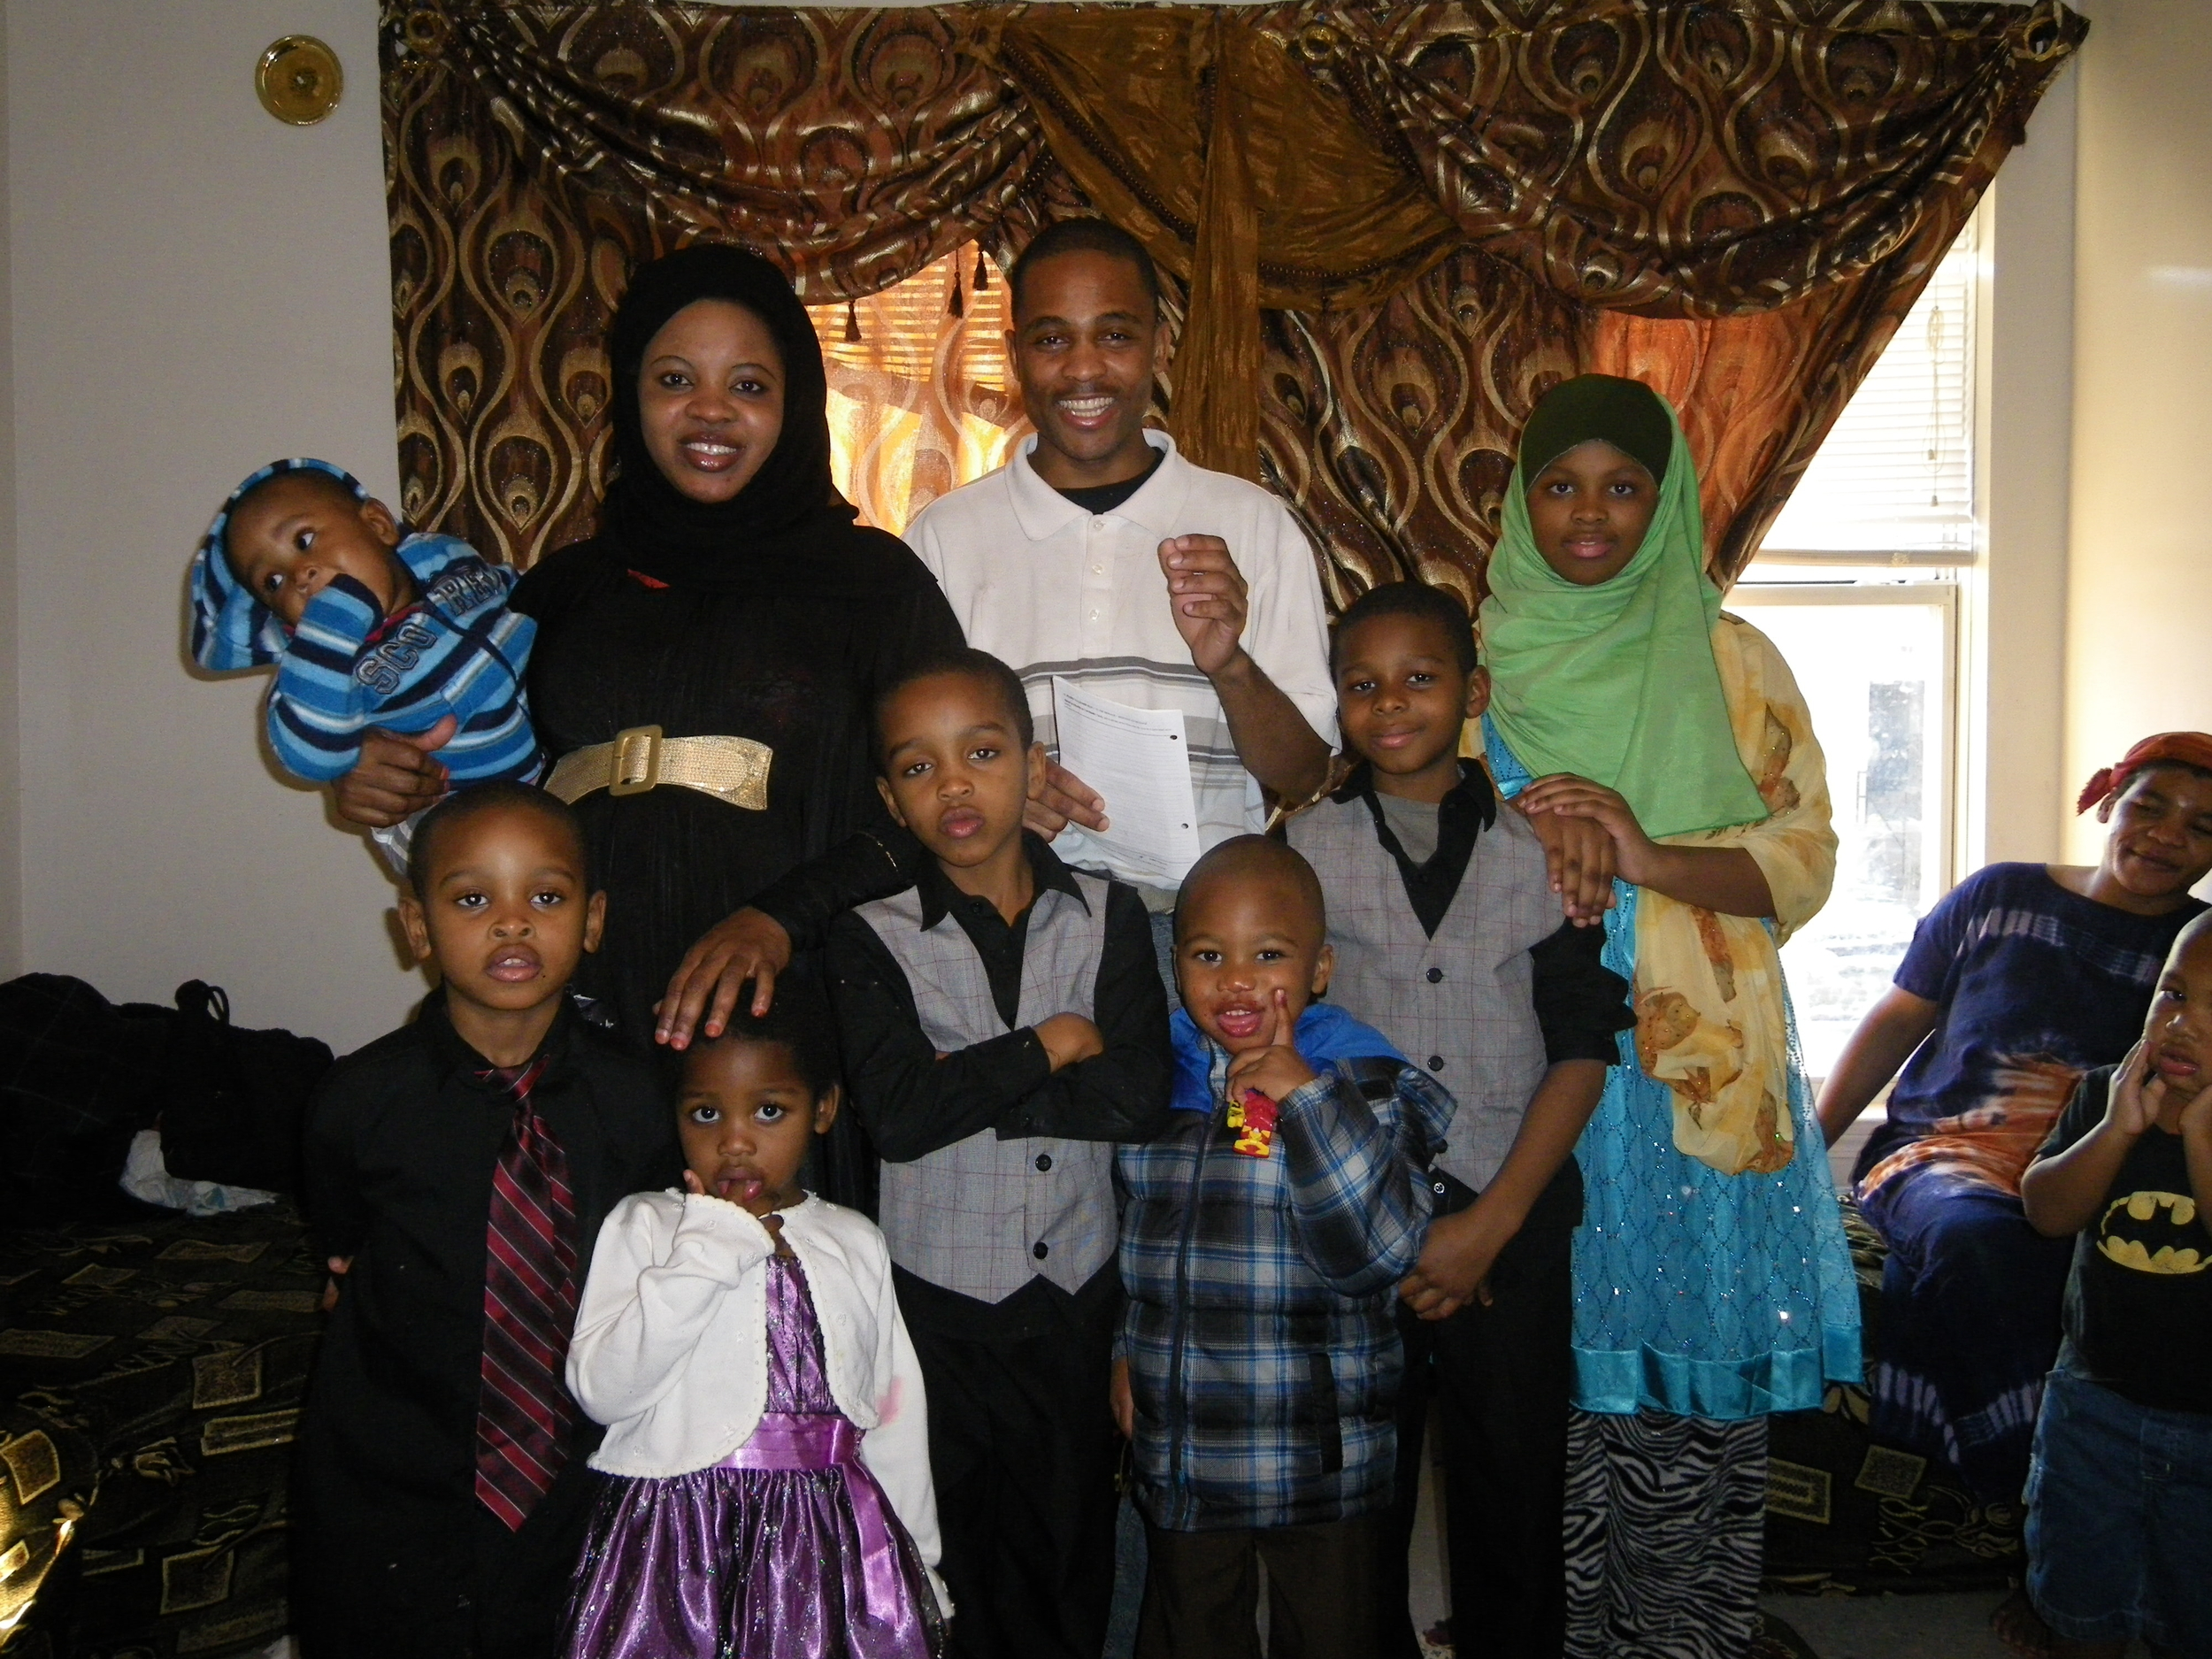 Mohamed, his wife, Mana, and their seven children